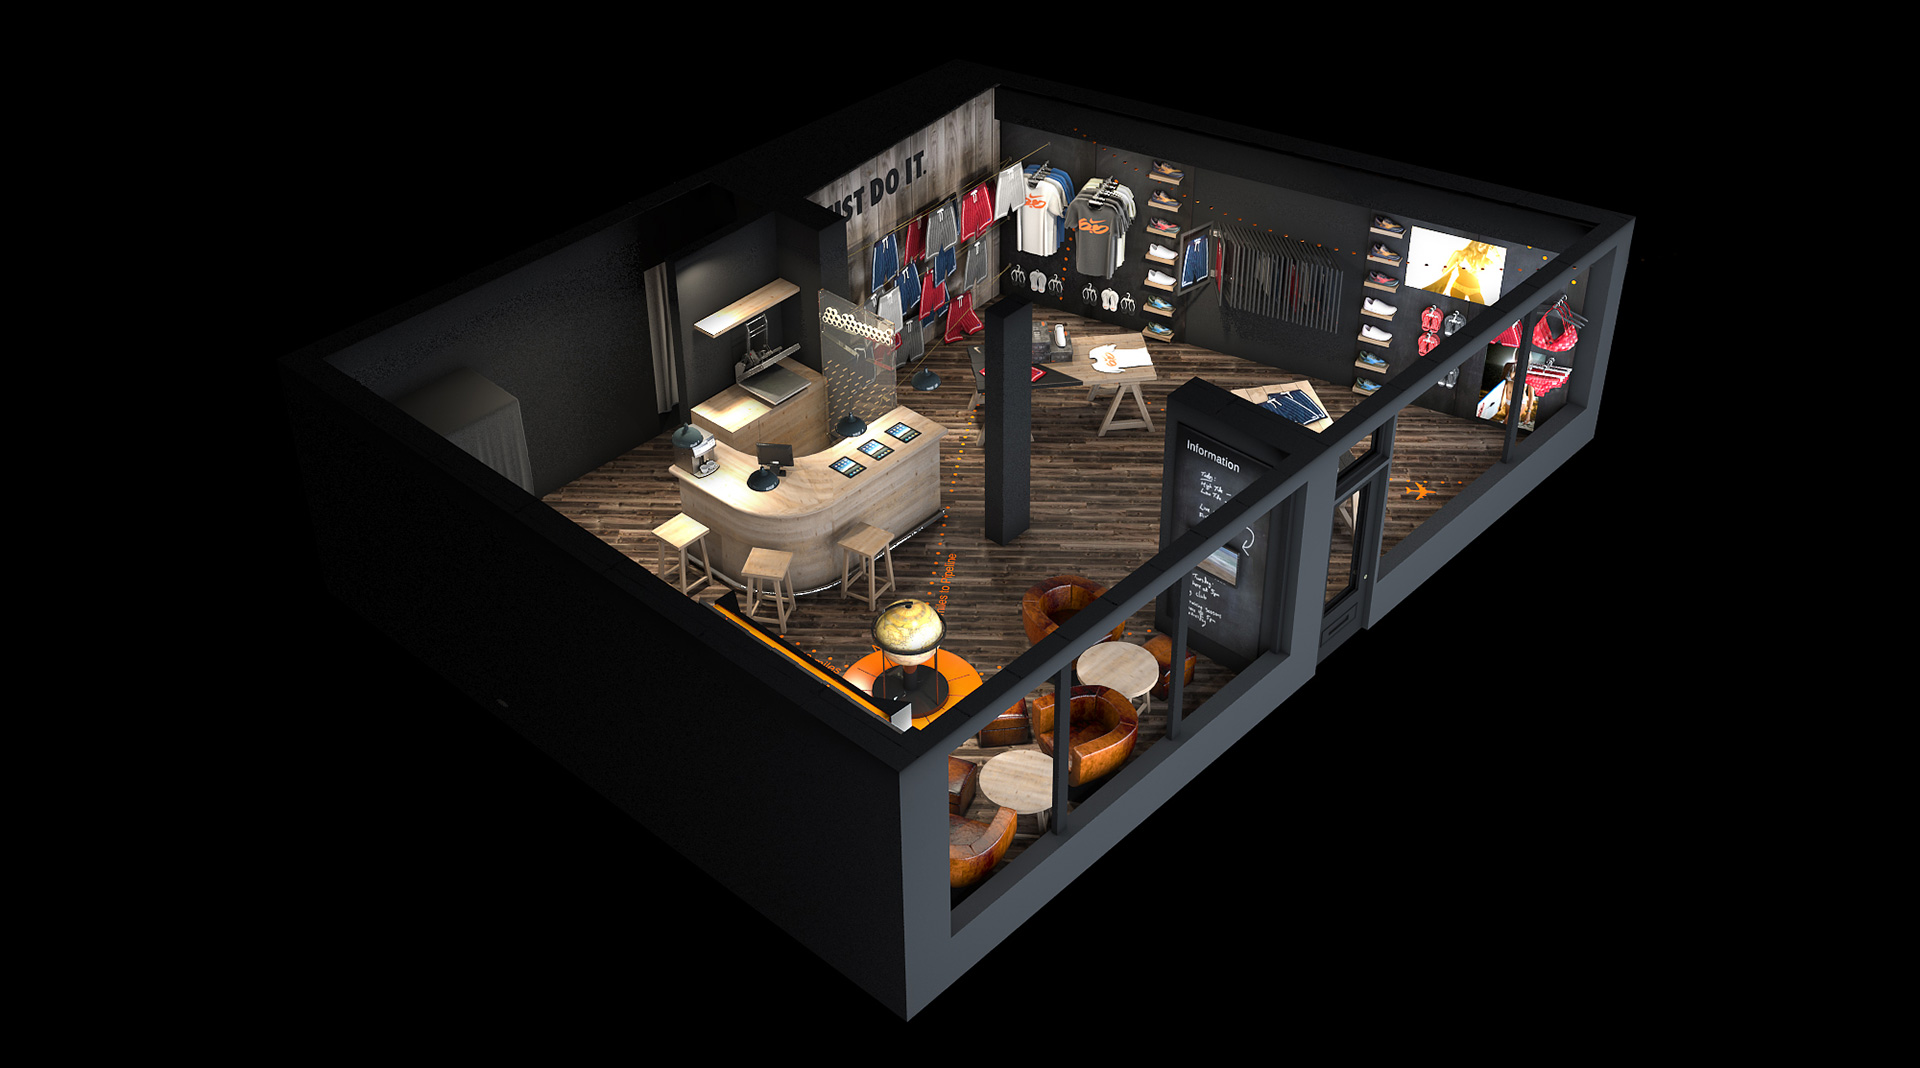 3D Perspective visualisation for Nike pop-up store